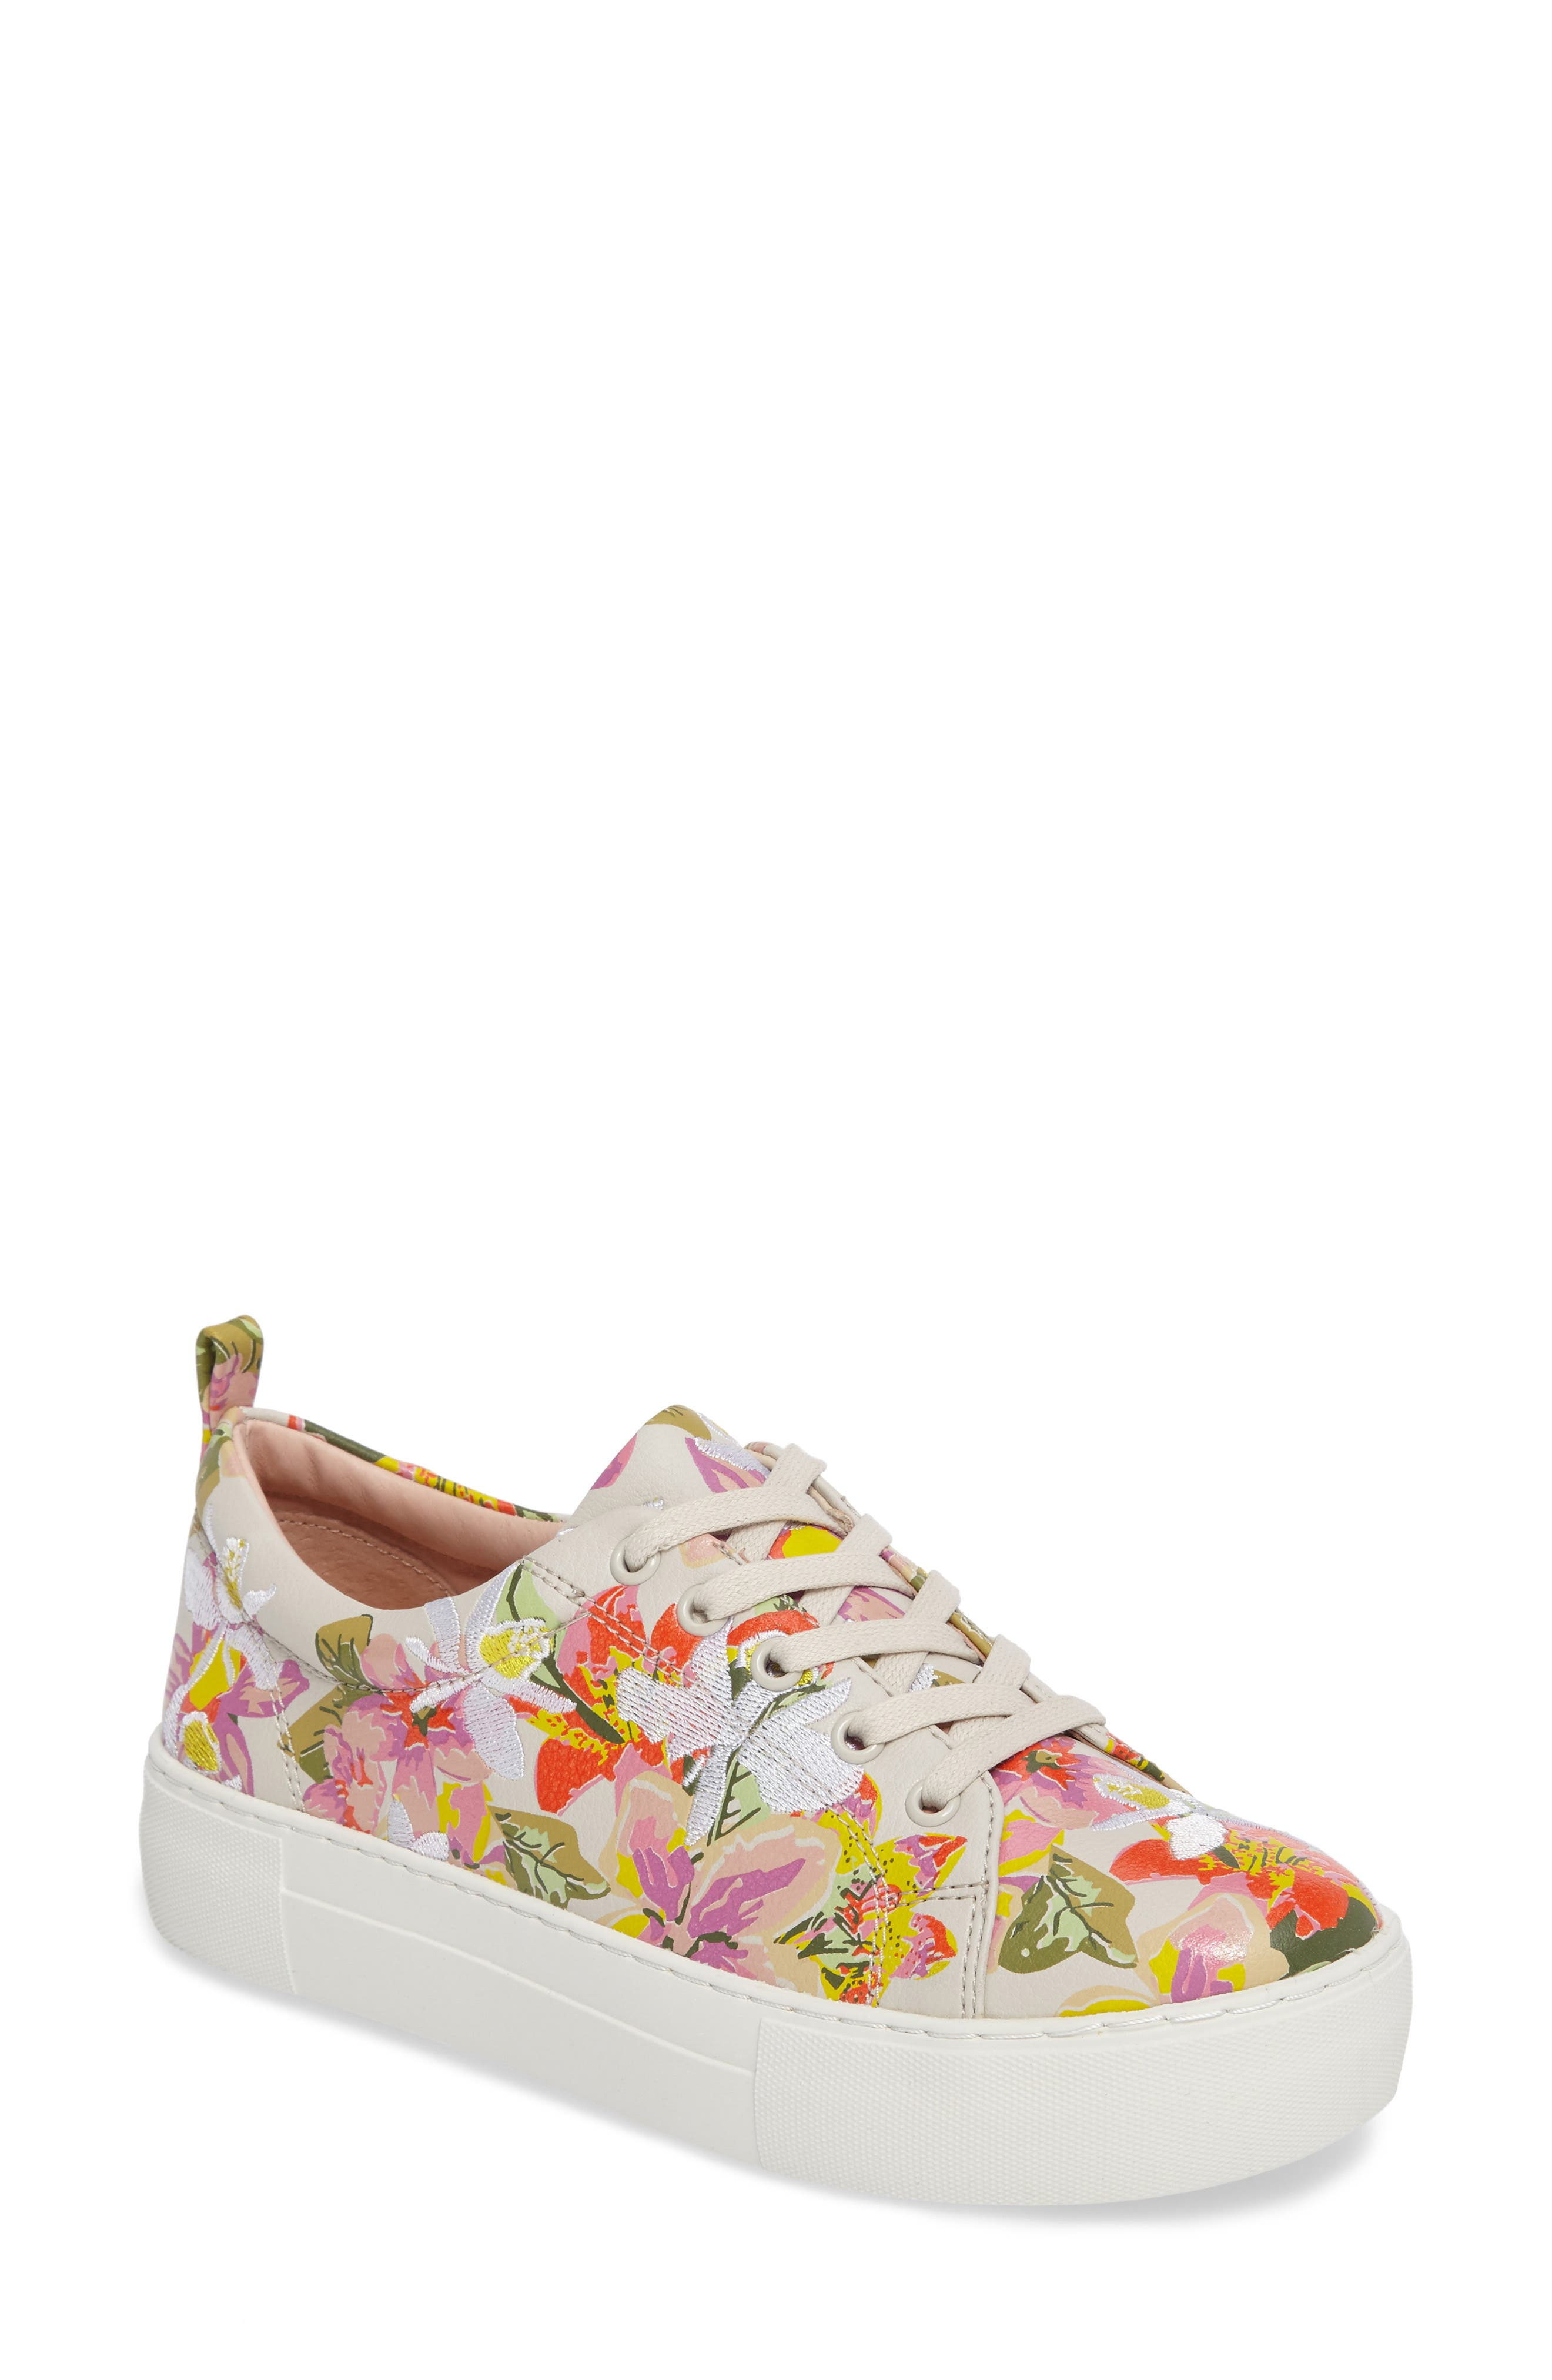 Appy Embroidered Platform Sneaker,                         Main,                         color, 650